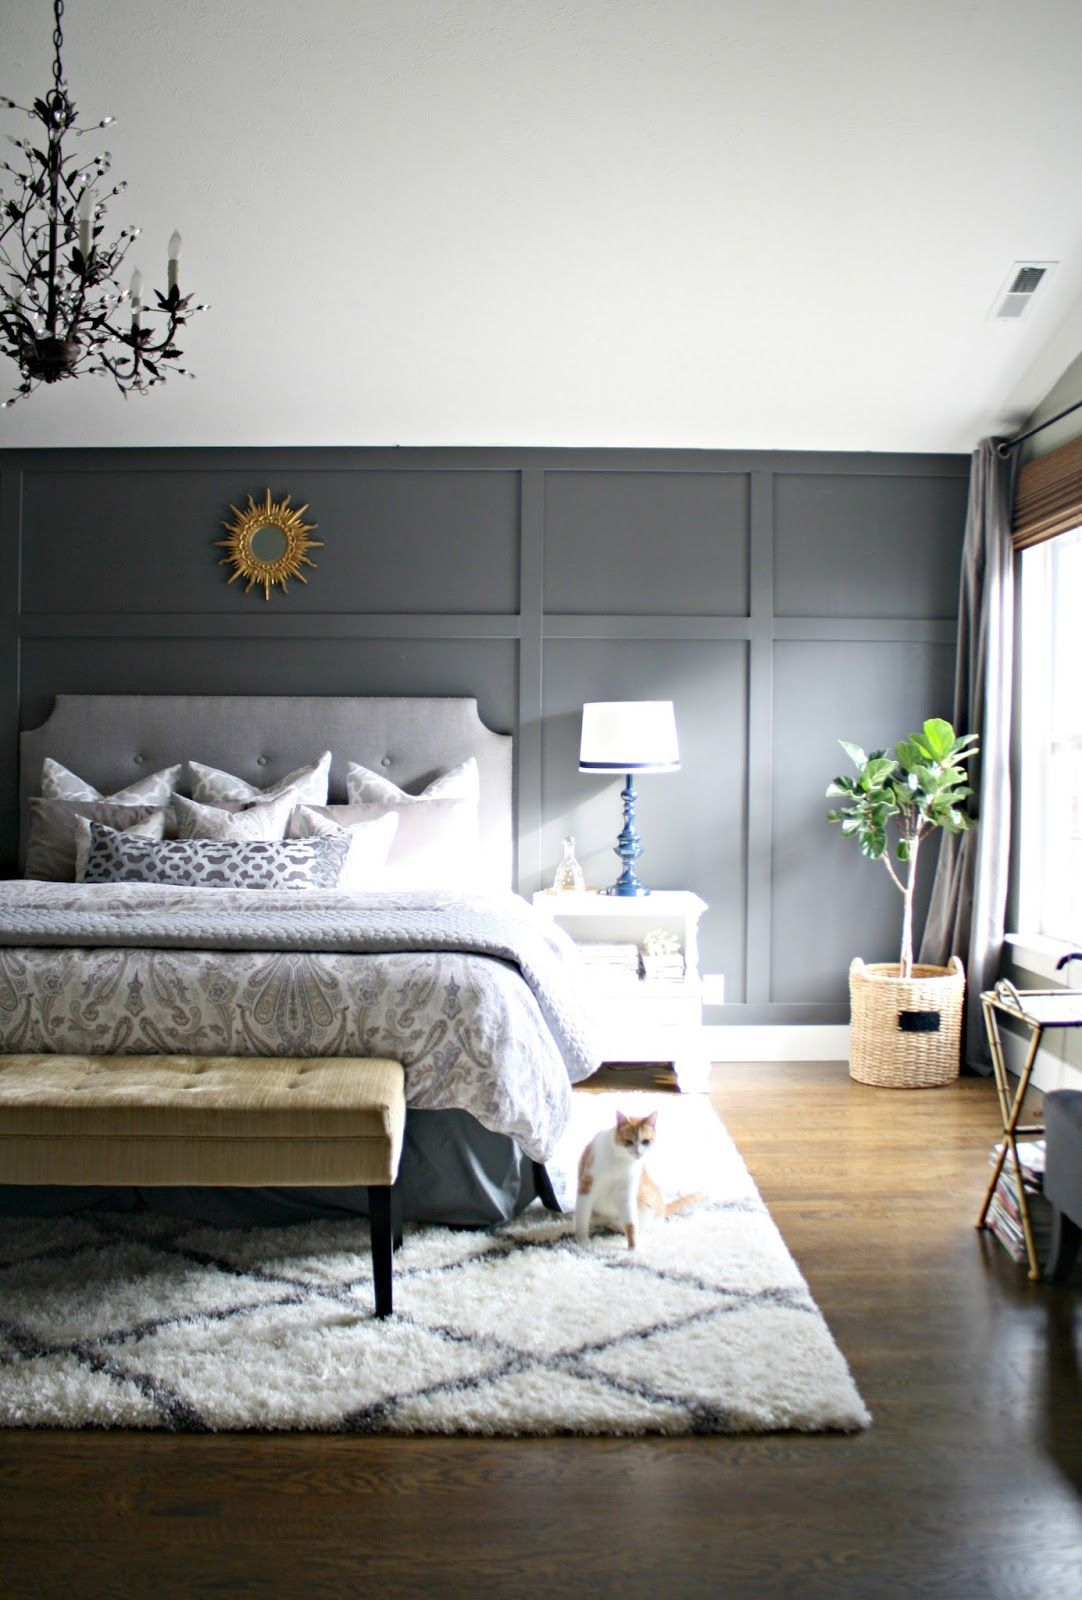 Bedroom Ideas With Desk